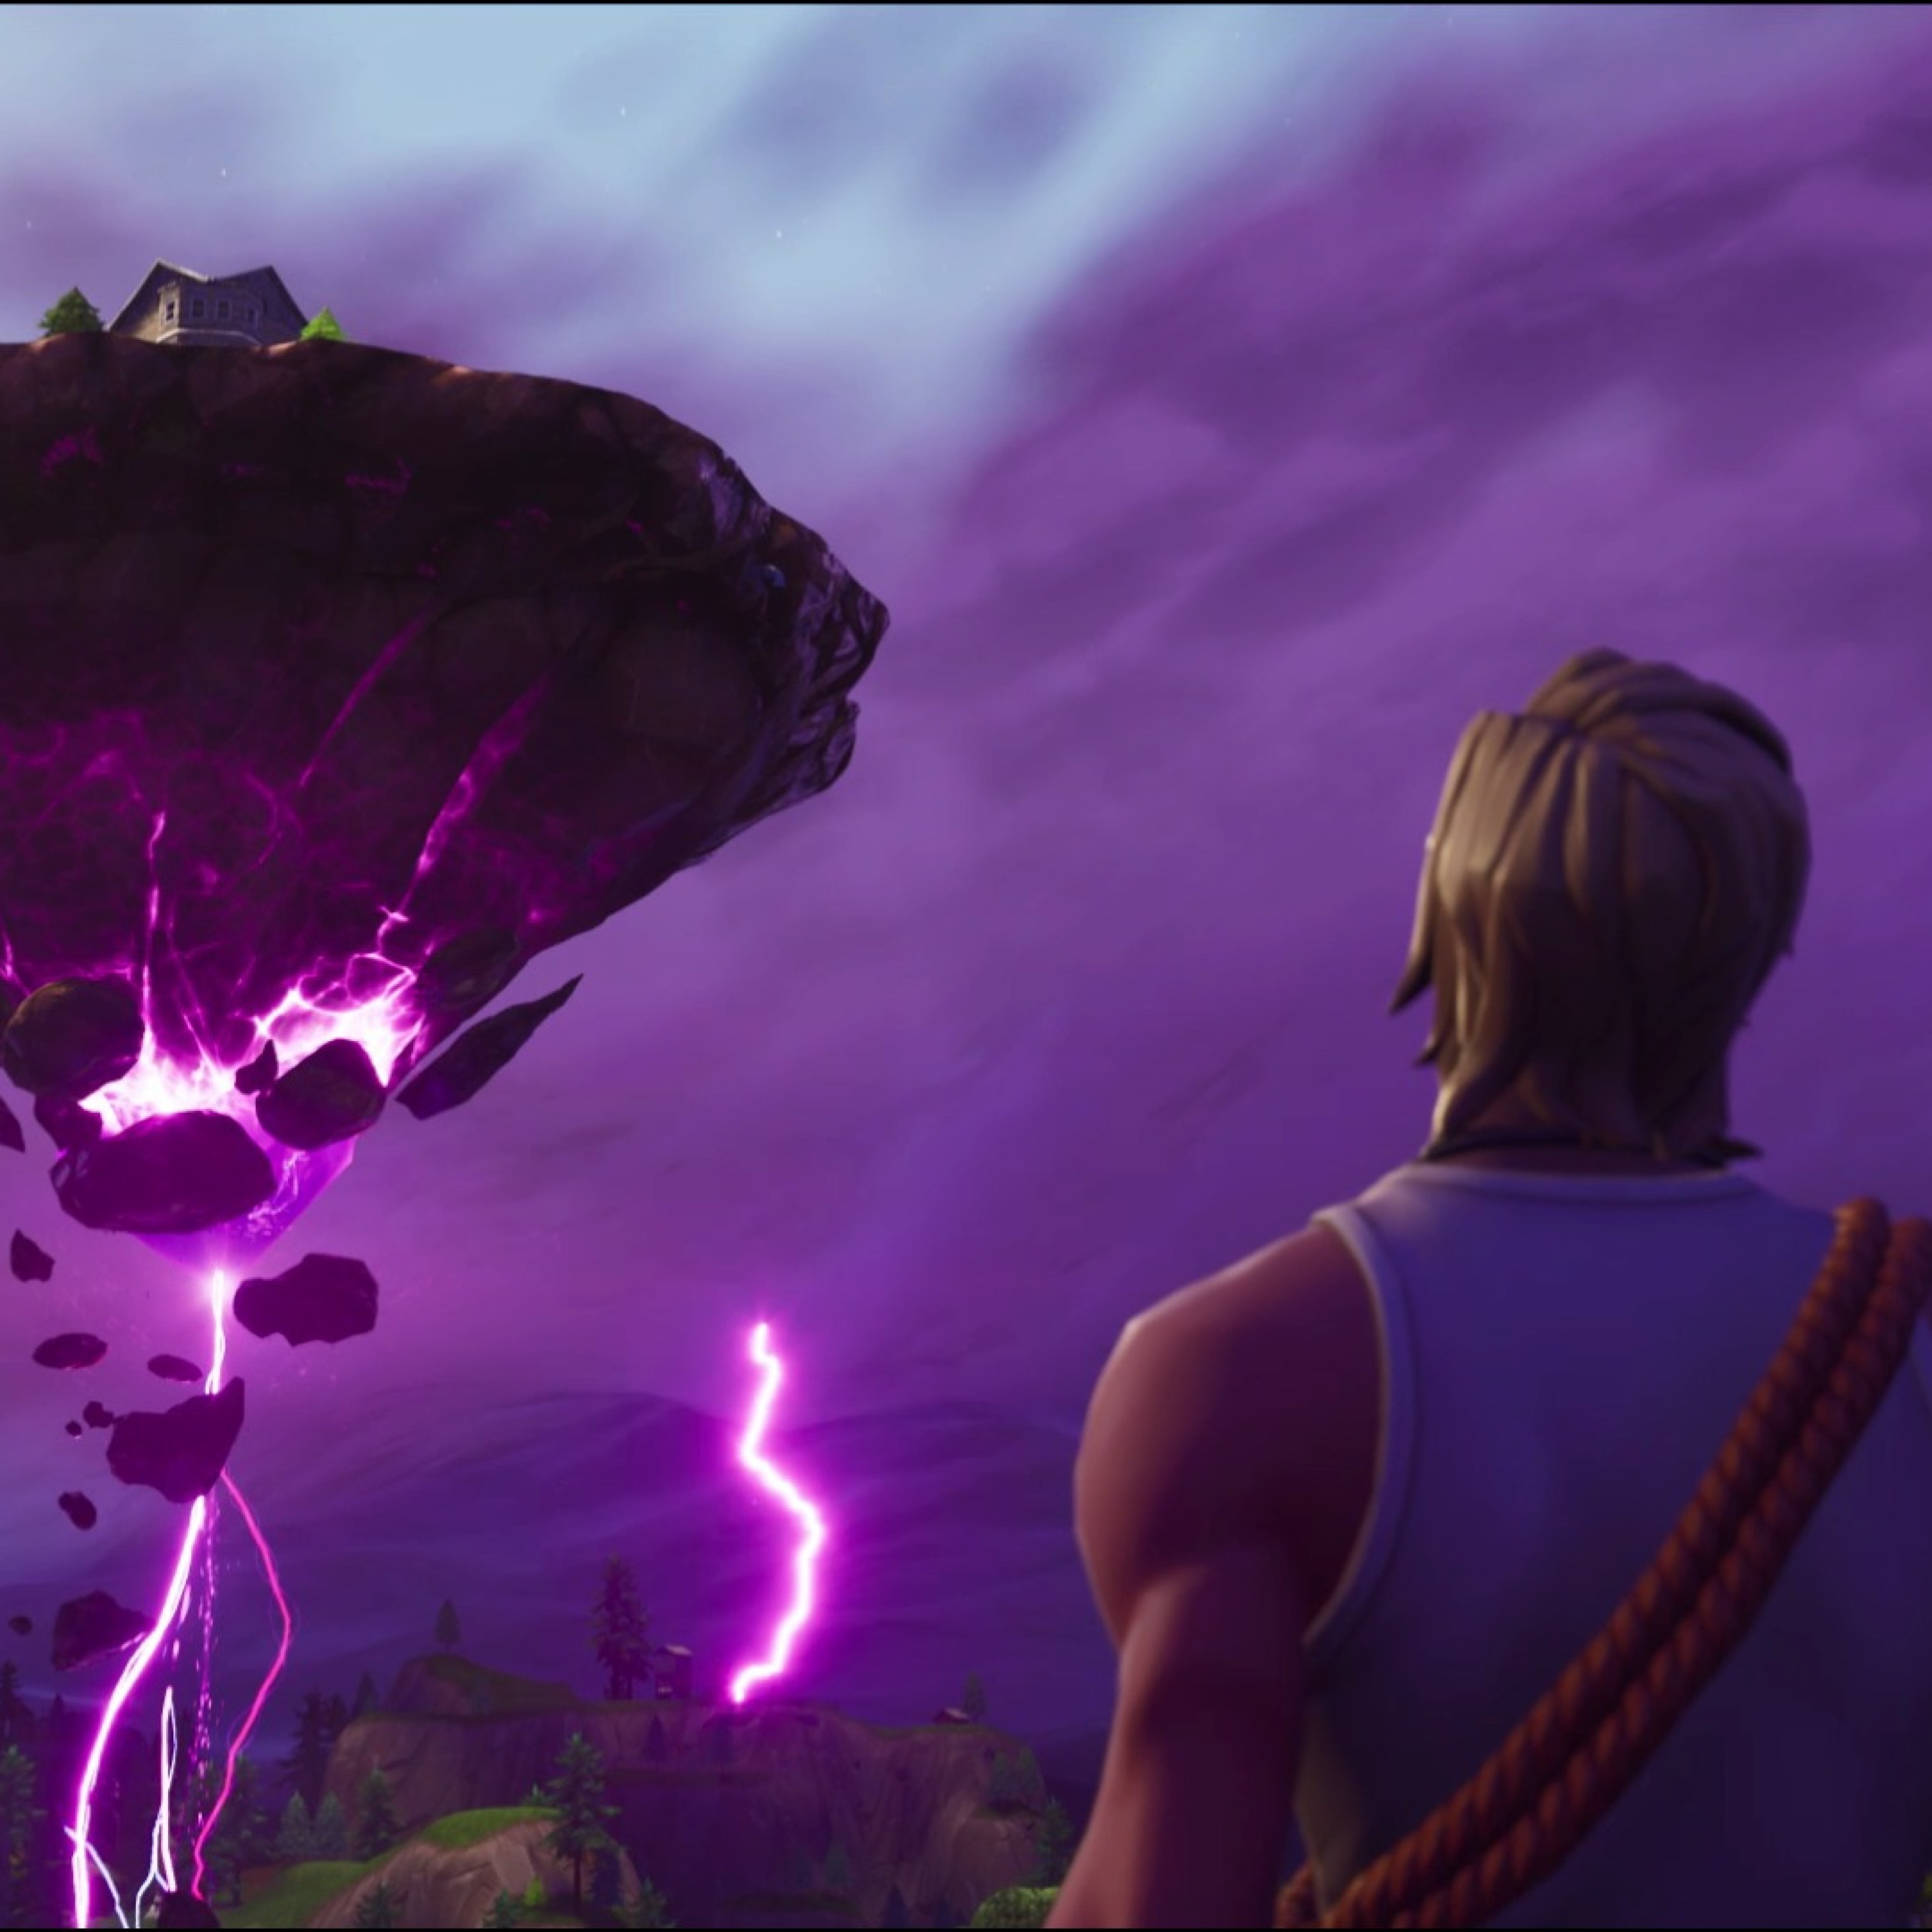 Download Fortnite Xbox One Gameplay 2248x2248 Resolution